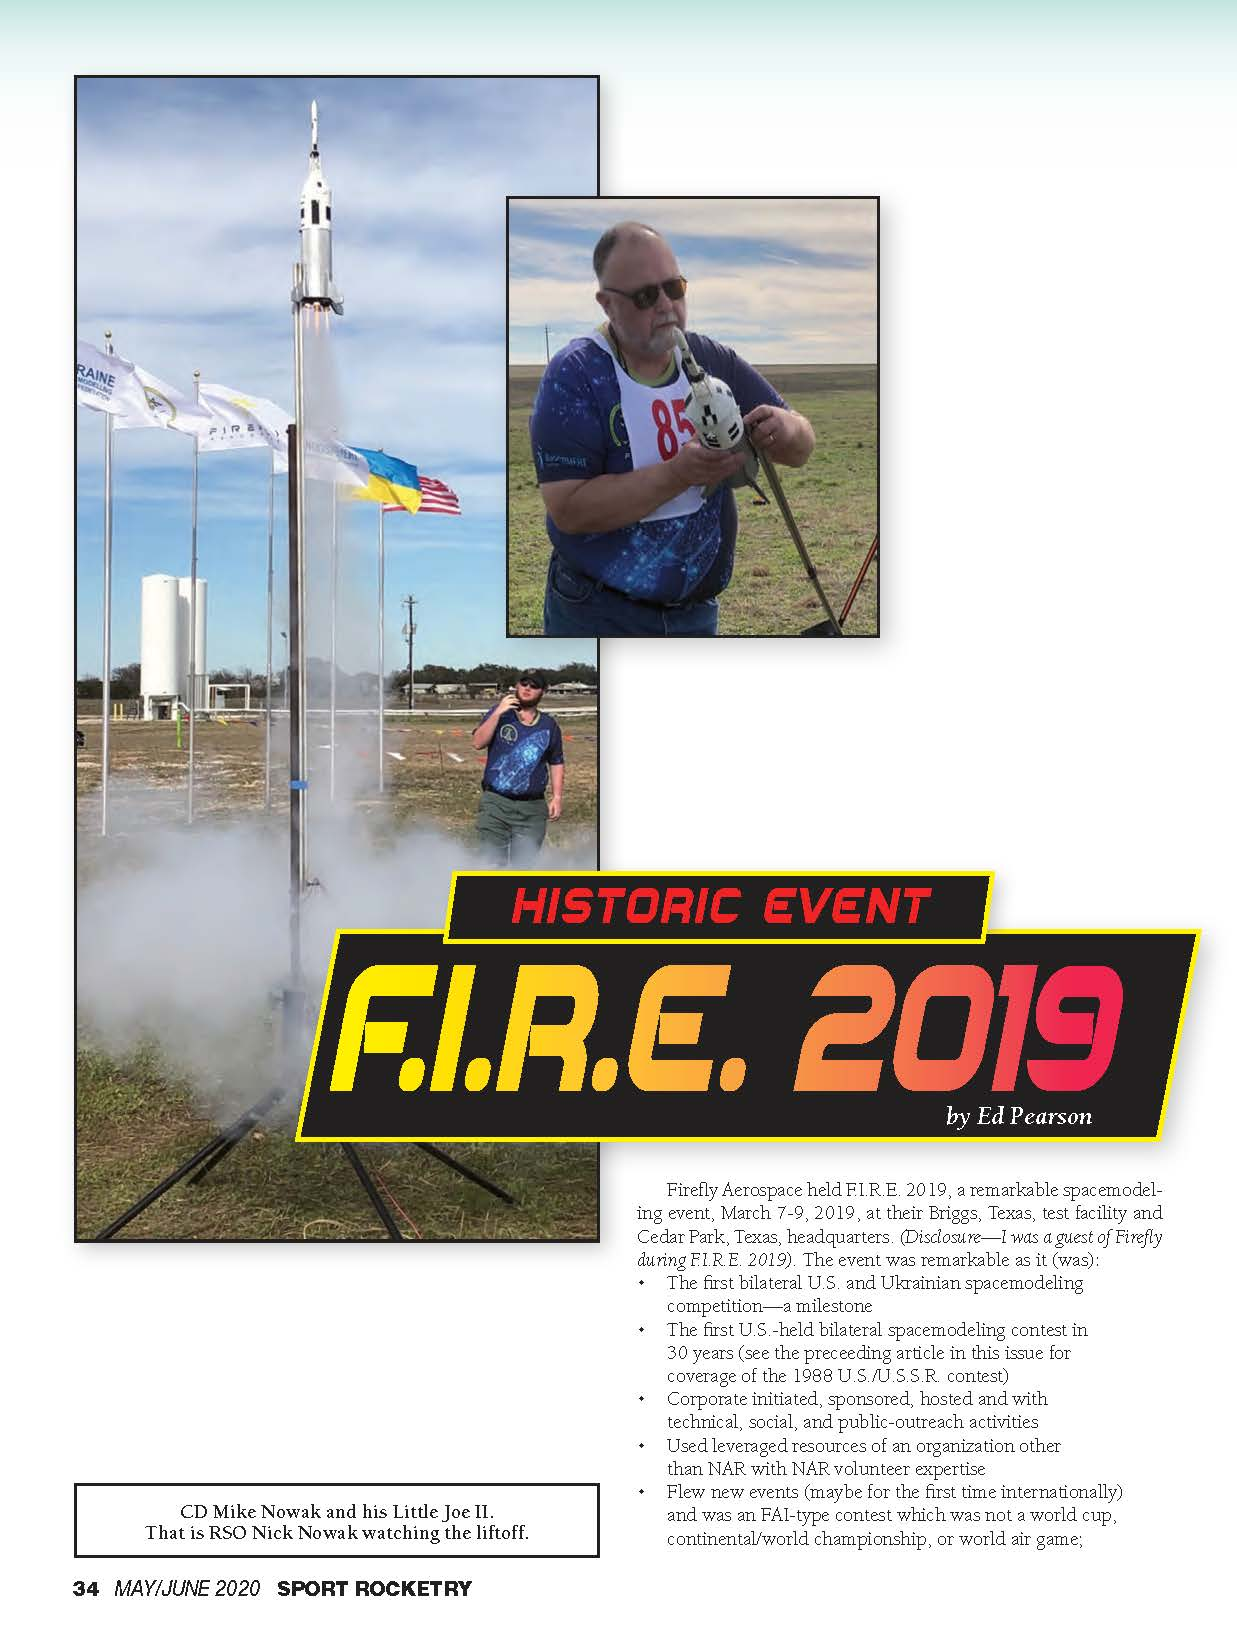 Sport_Rocketry_Magazine_FIRE-2019-Article_Page_3